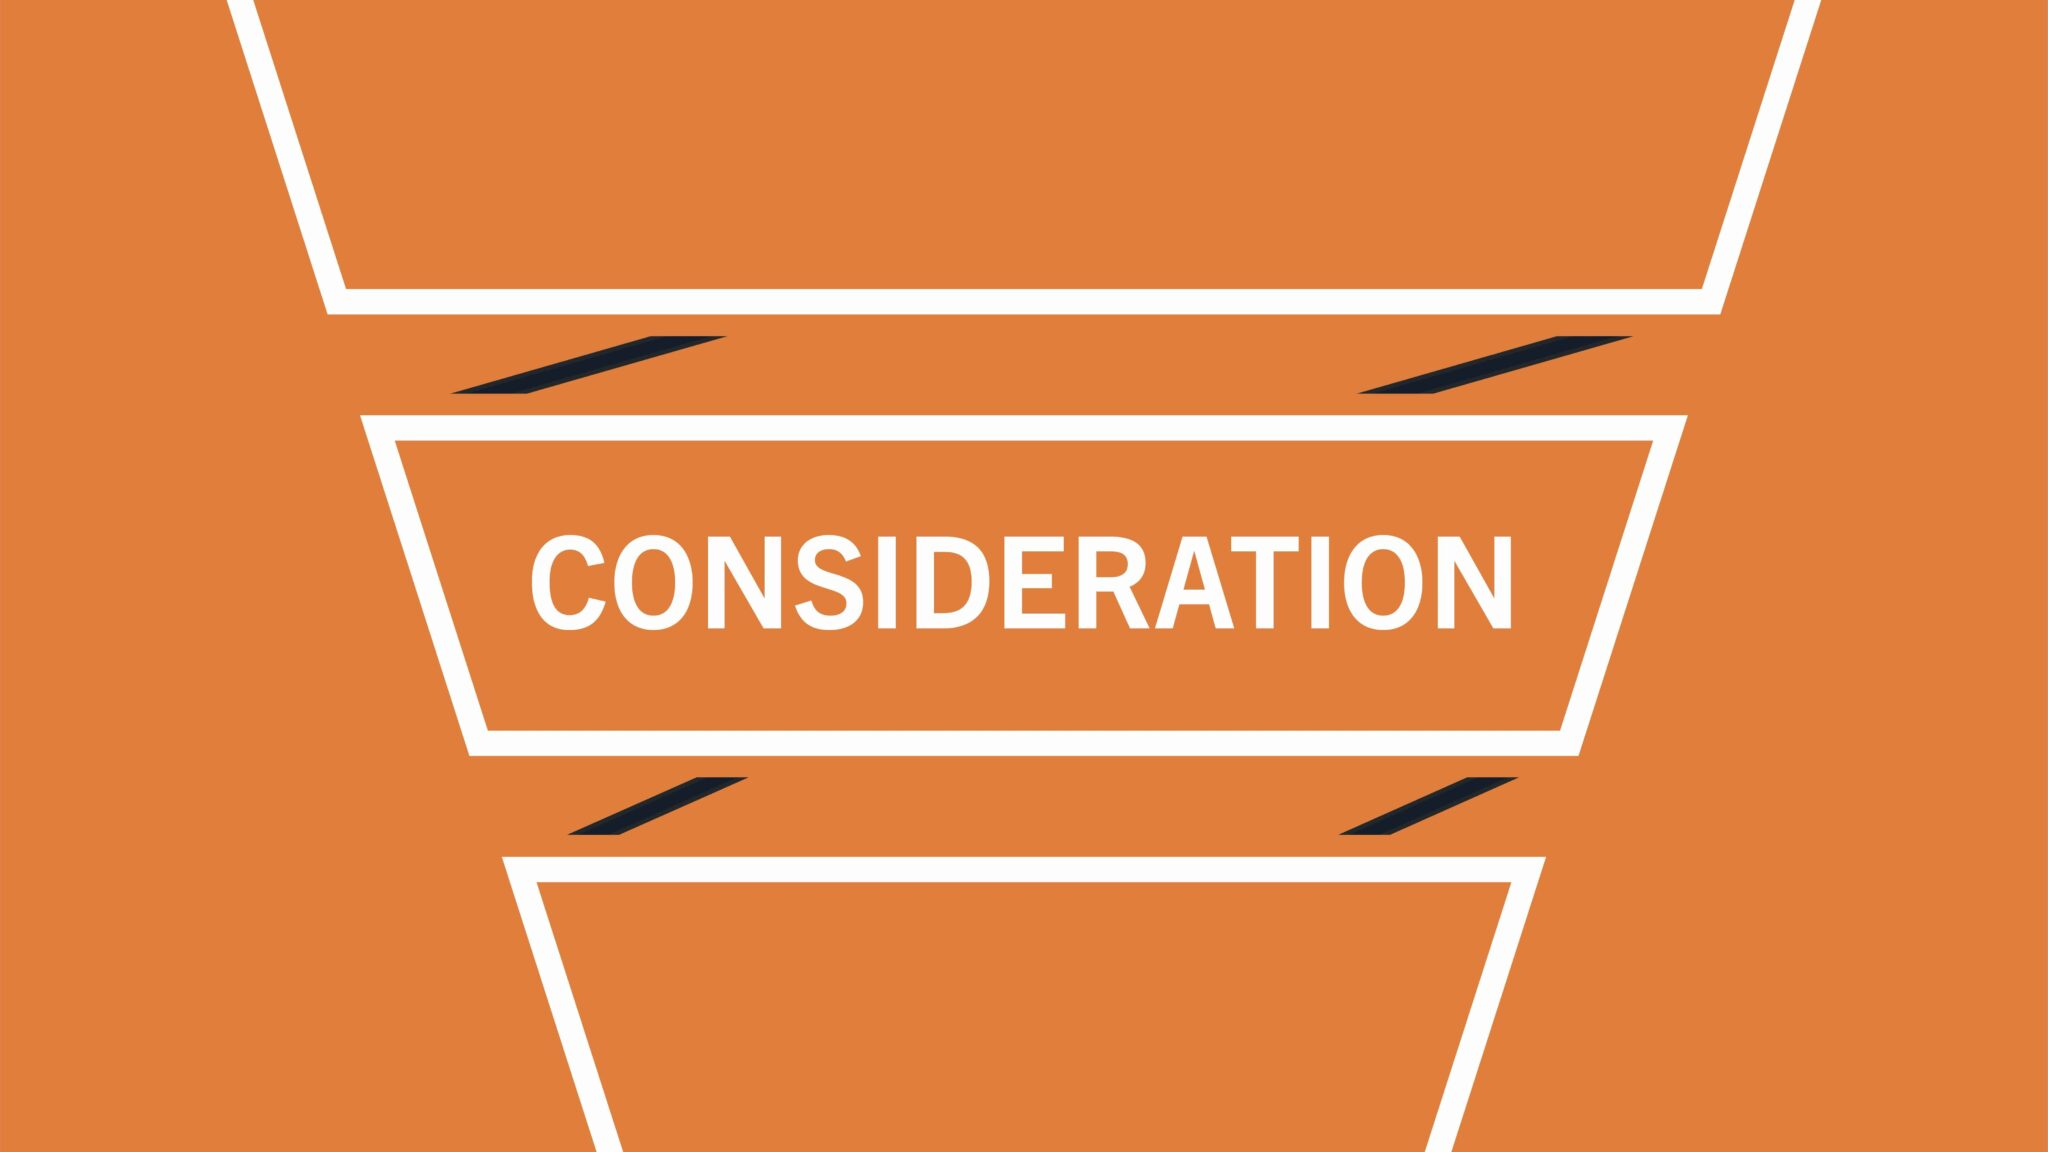 consideration stage of the B2B marketing funnel